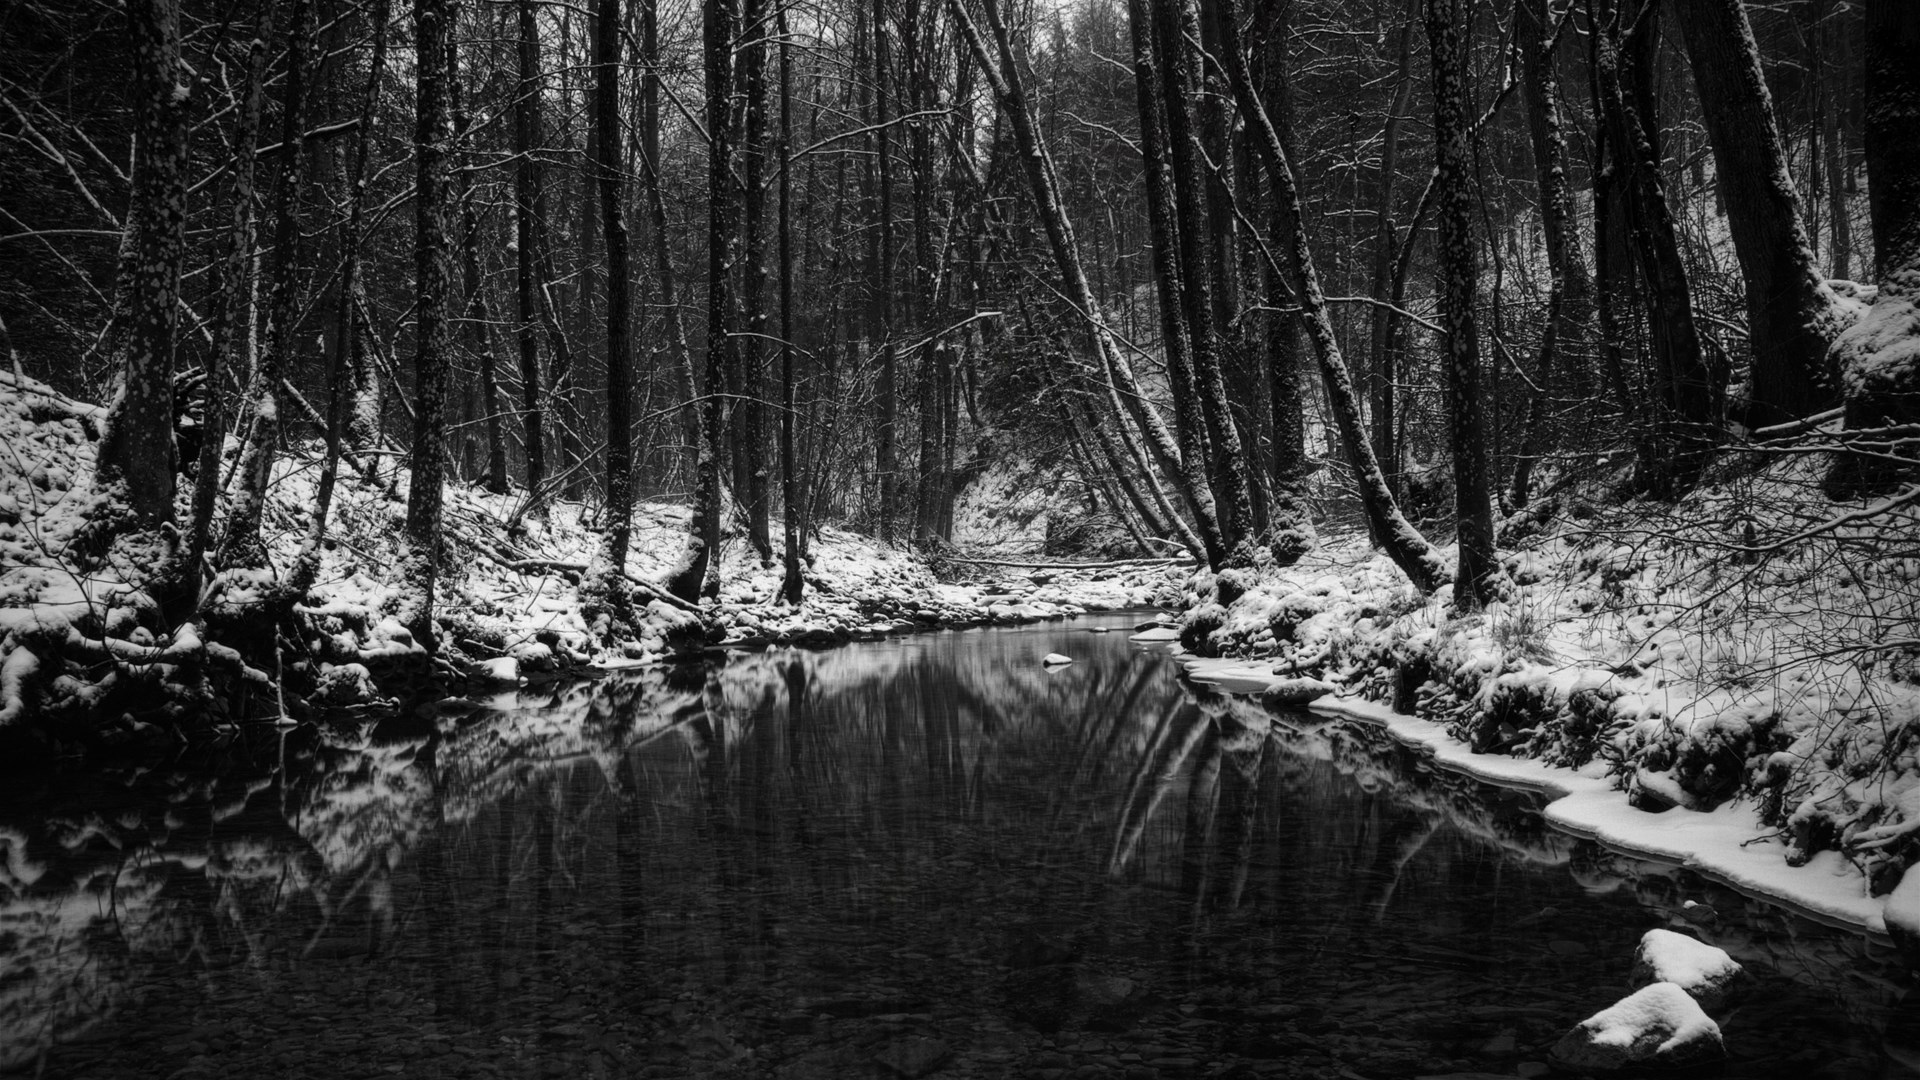 Black White Monochrome Nature Wallpaper 1920x1080